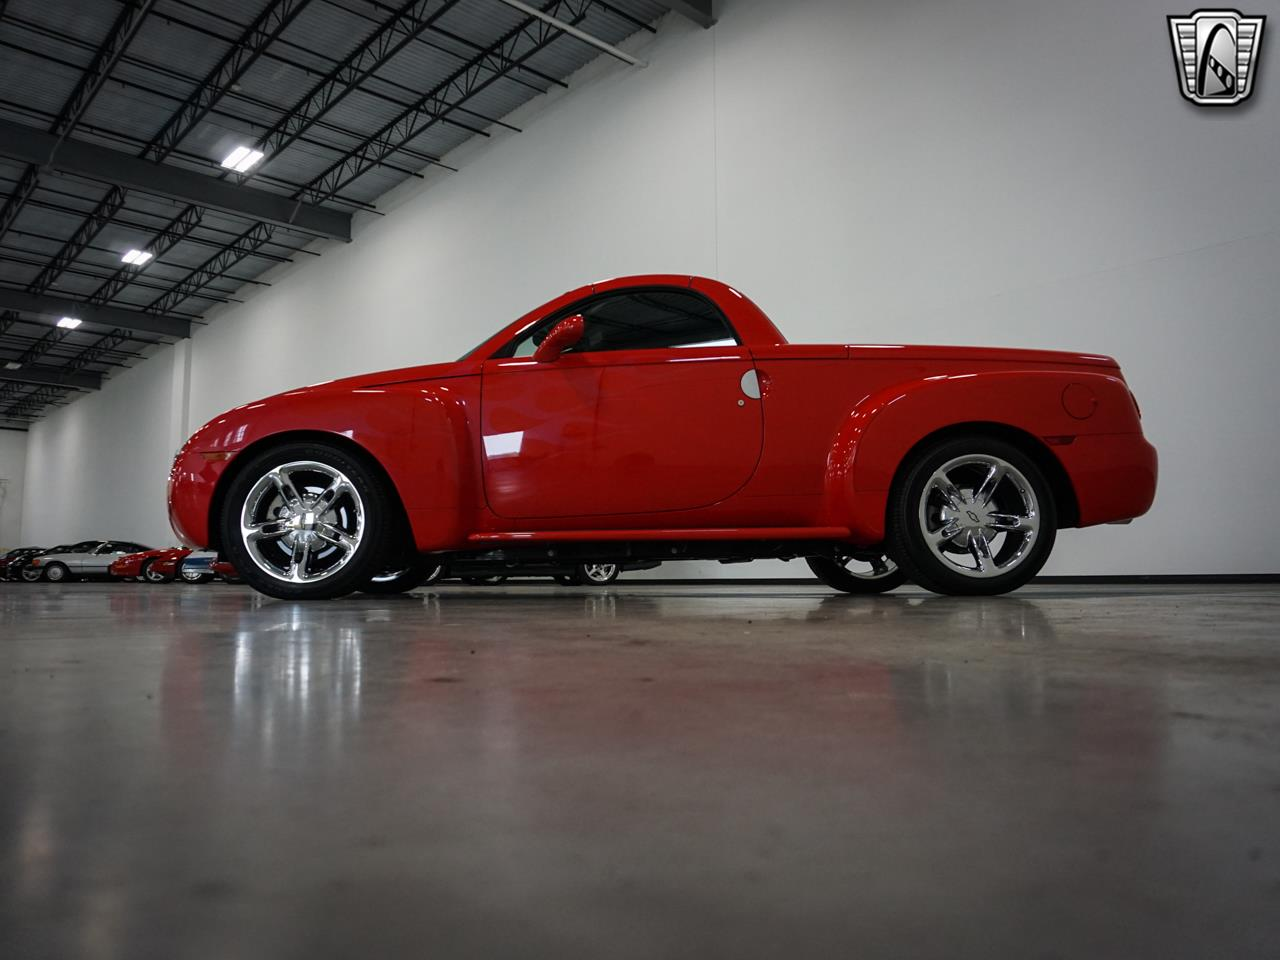 2004 Chevrolet SSR (CC-1341998) for sale in O'Fallon, Illinois